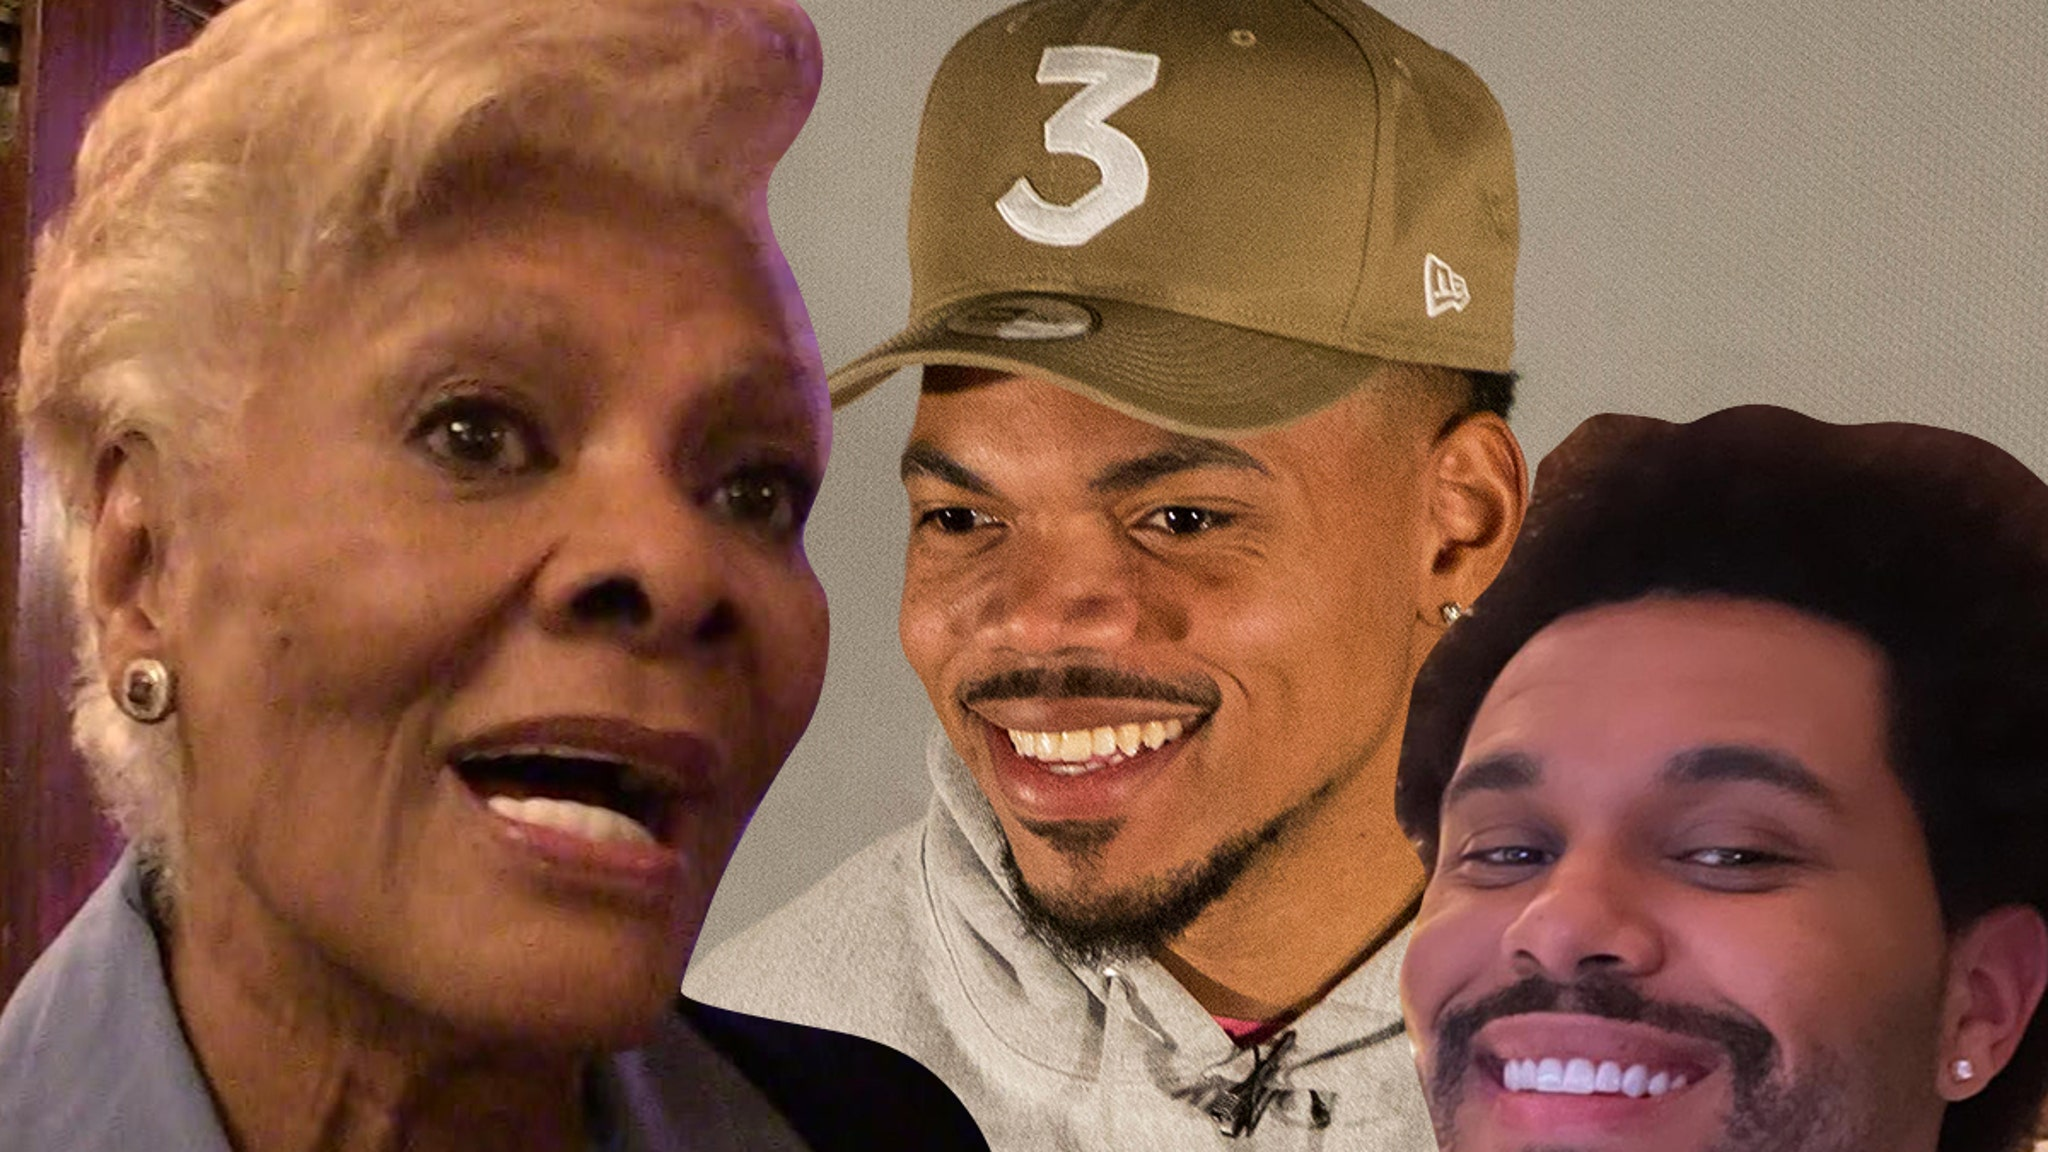 Dionne Warwick, Chance, Weeknd Helping Feed Hungry with Song Collab - TMZ